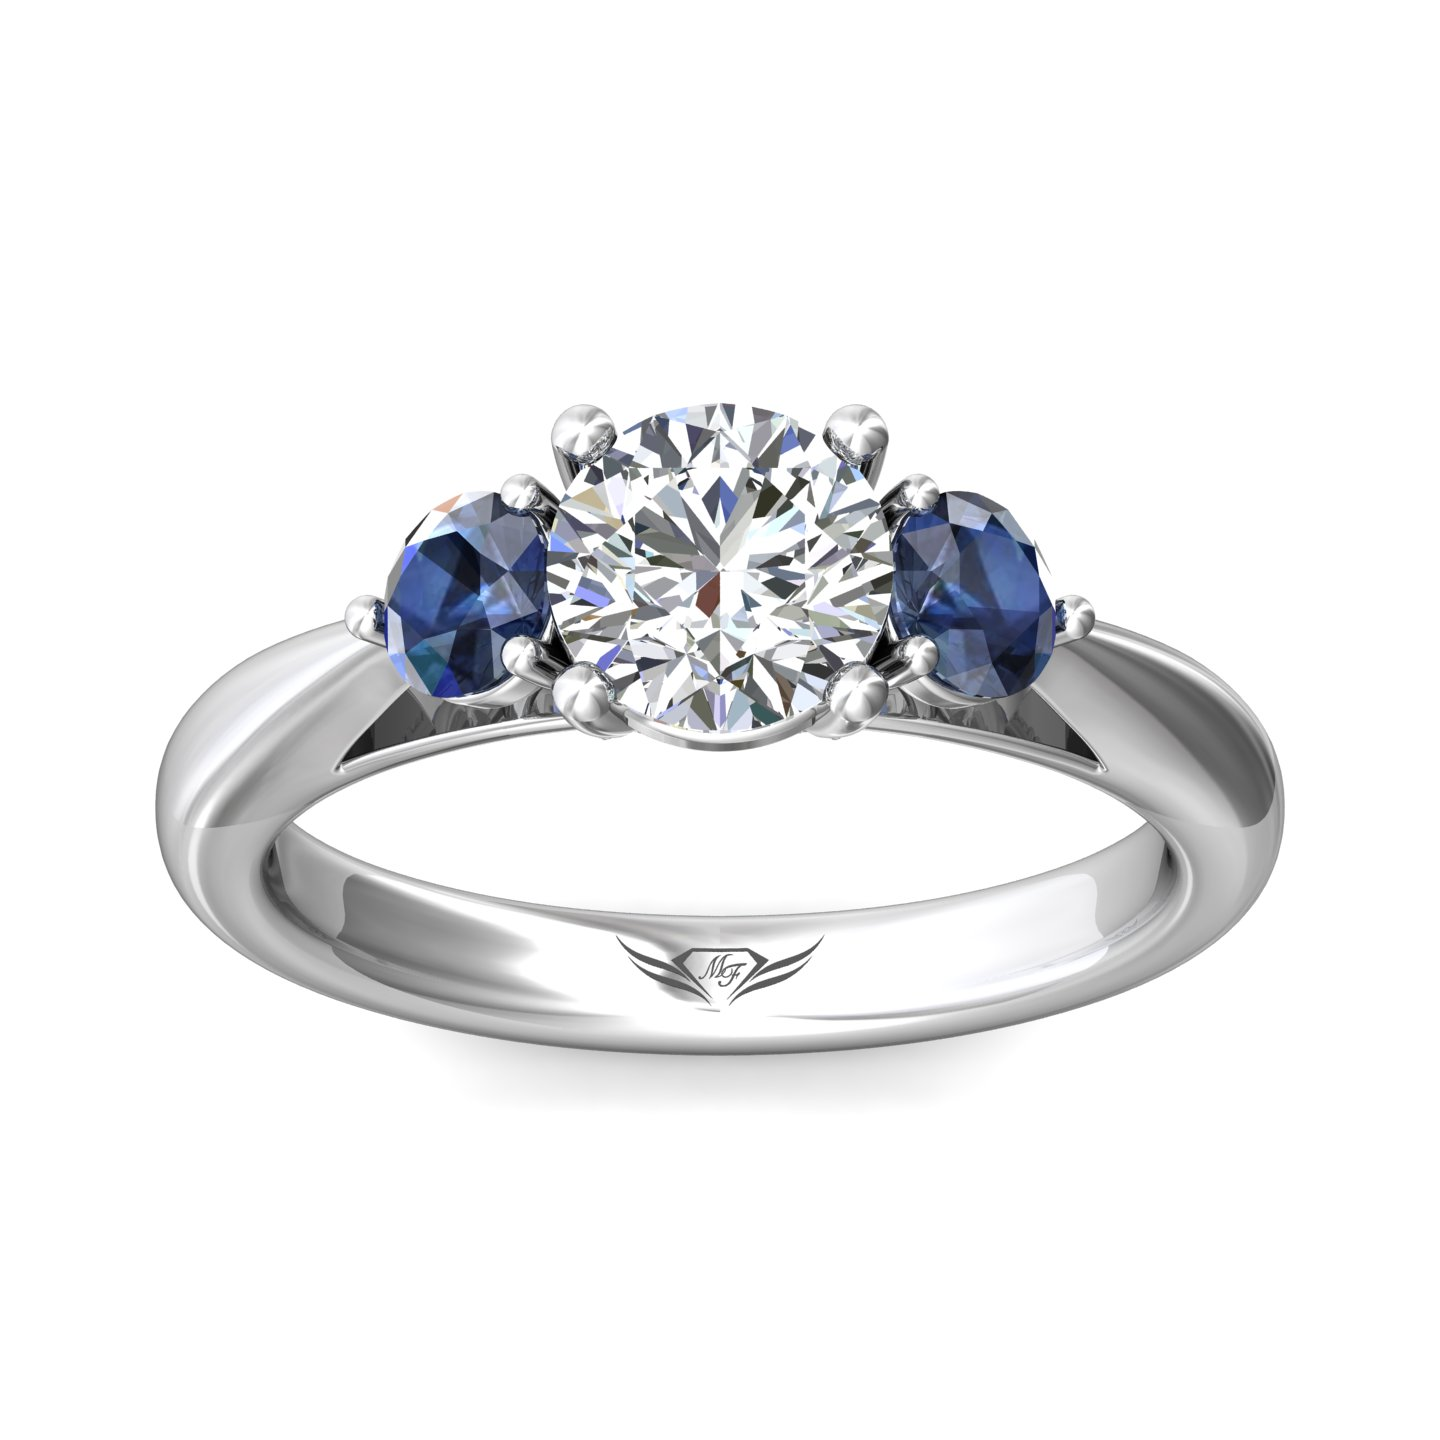 Rings - 14K White Gold FlyerFit Three Stone Engagement Ring - image #3